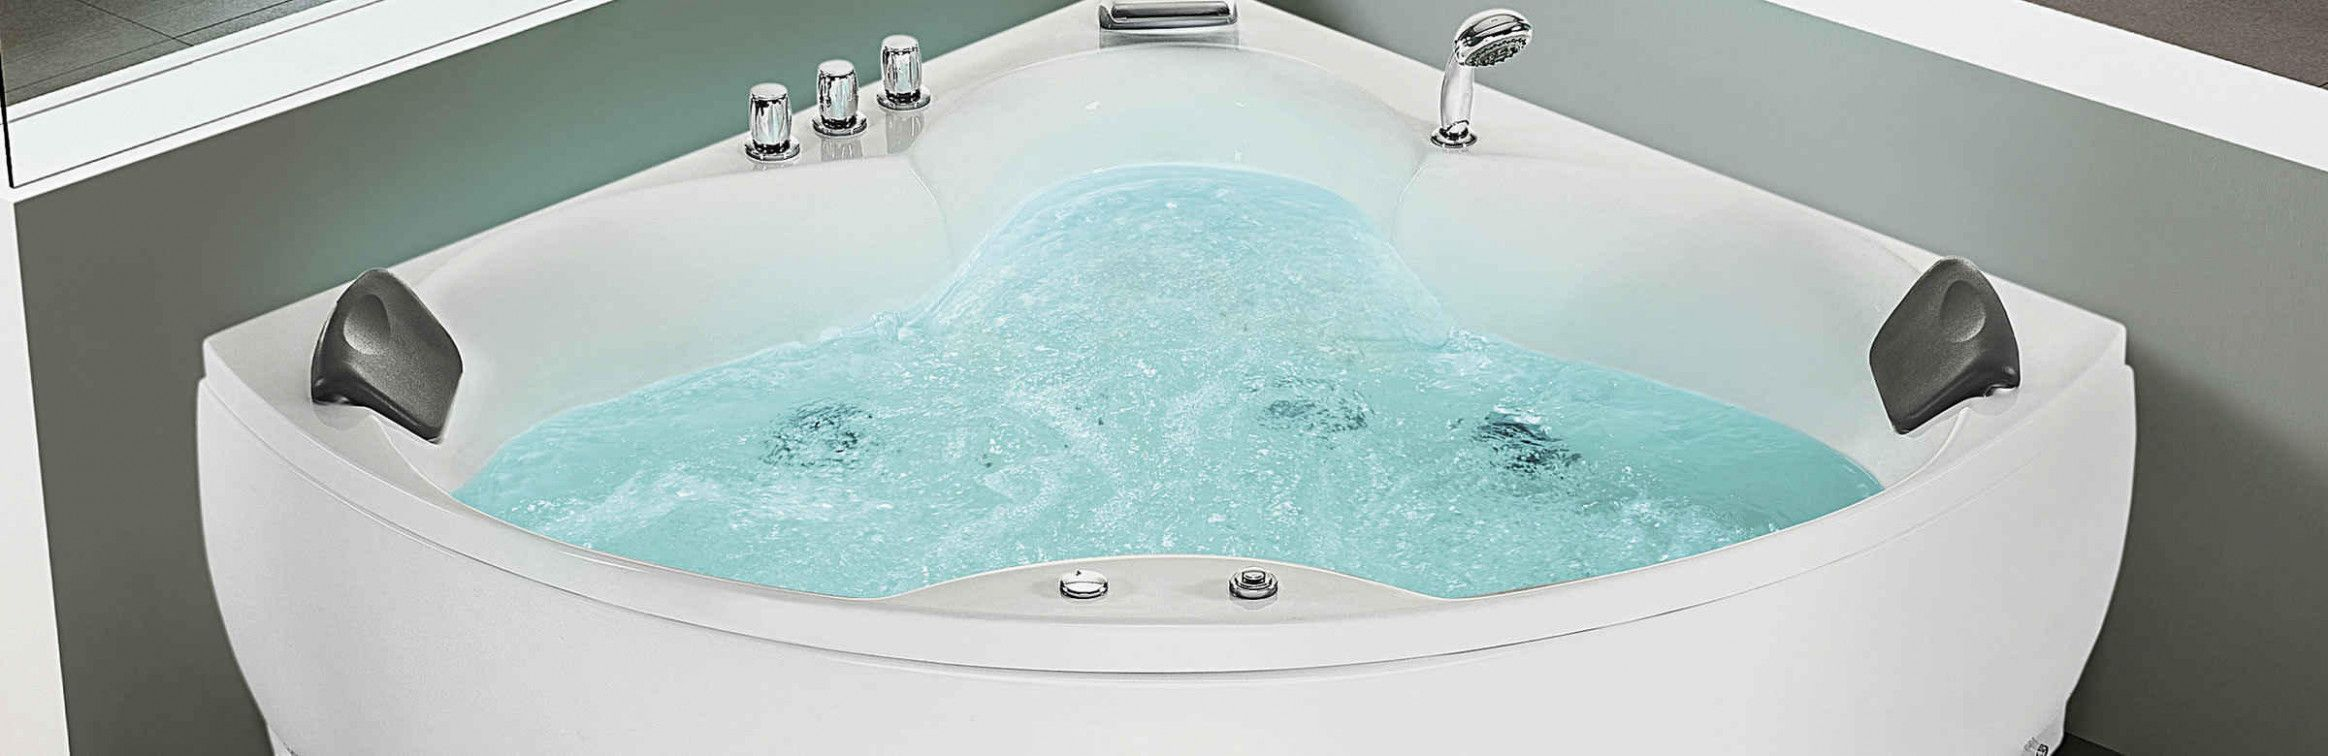 This Is How Whirlpool Bathtub Jacuzzi Master Bathrooms Will Look ...